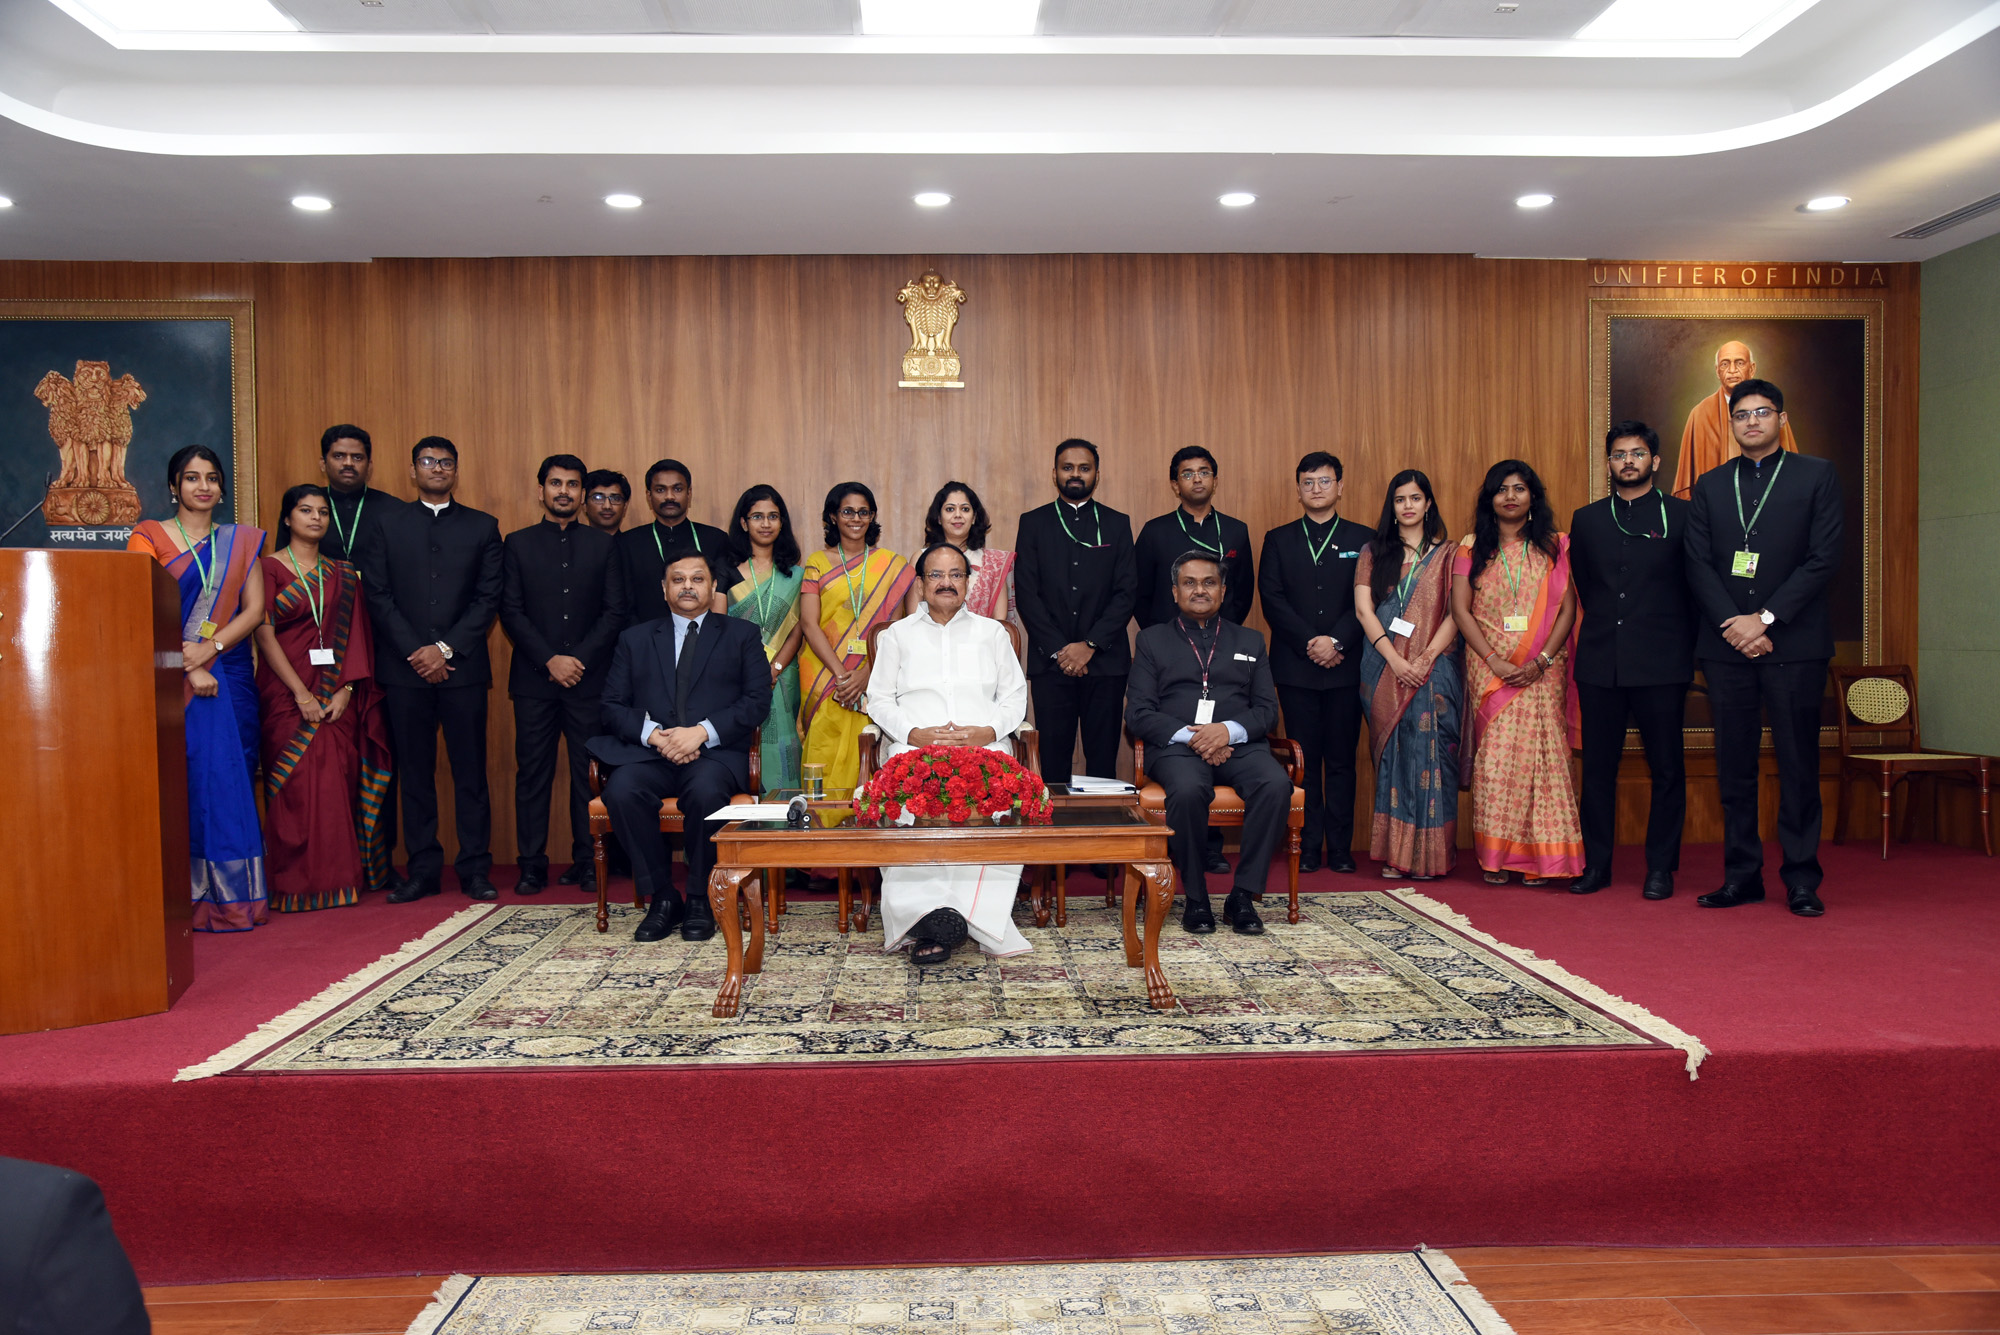 The Vice President, Shri M. Venkaiah Naidu with a group of Officers of the 2017 batch of Indian Administrative Service (IAS), in New Delhi on September 12, 2019.